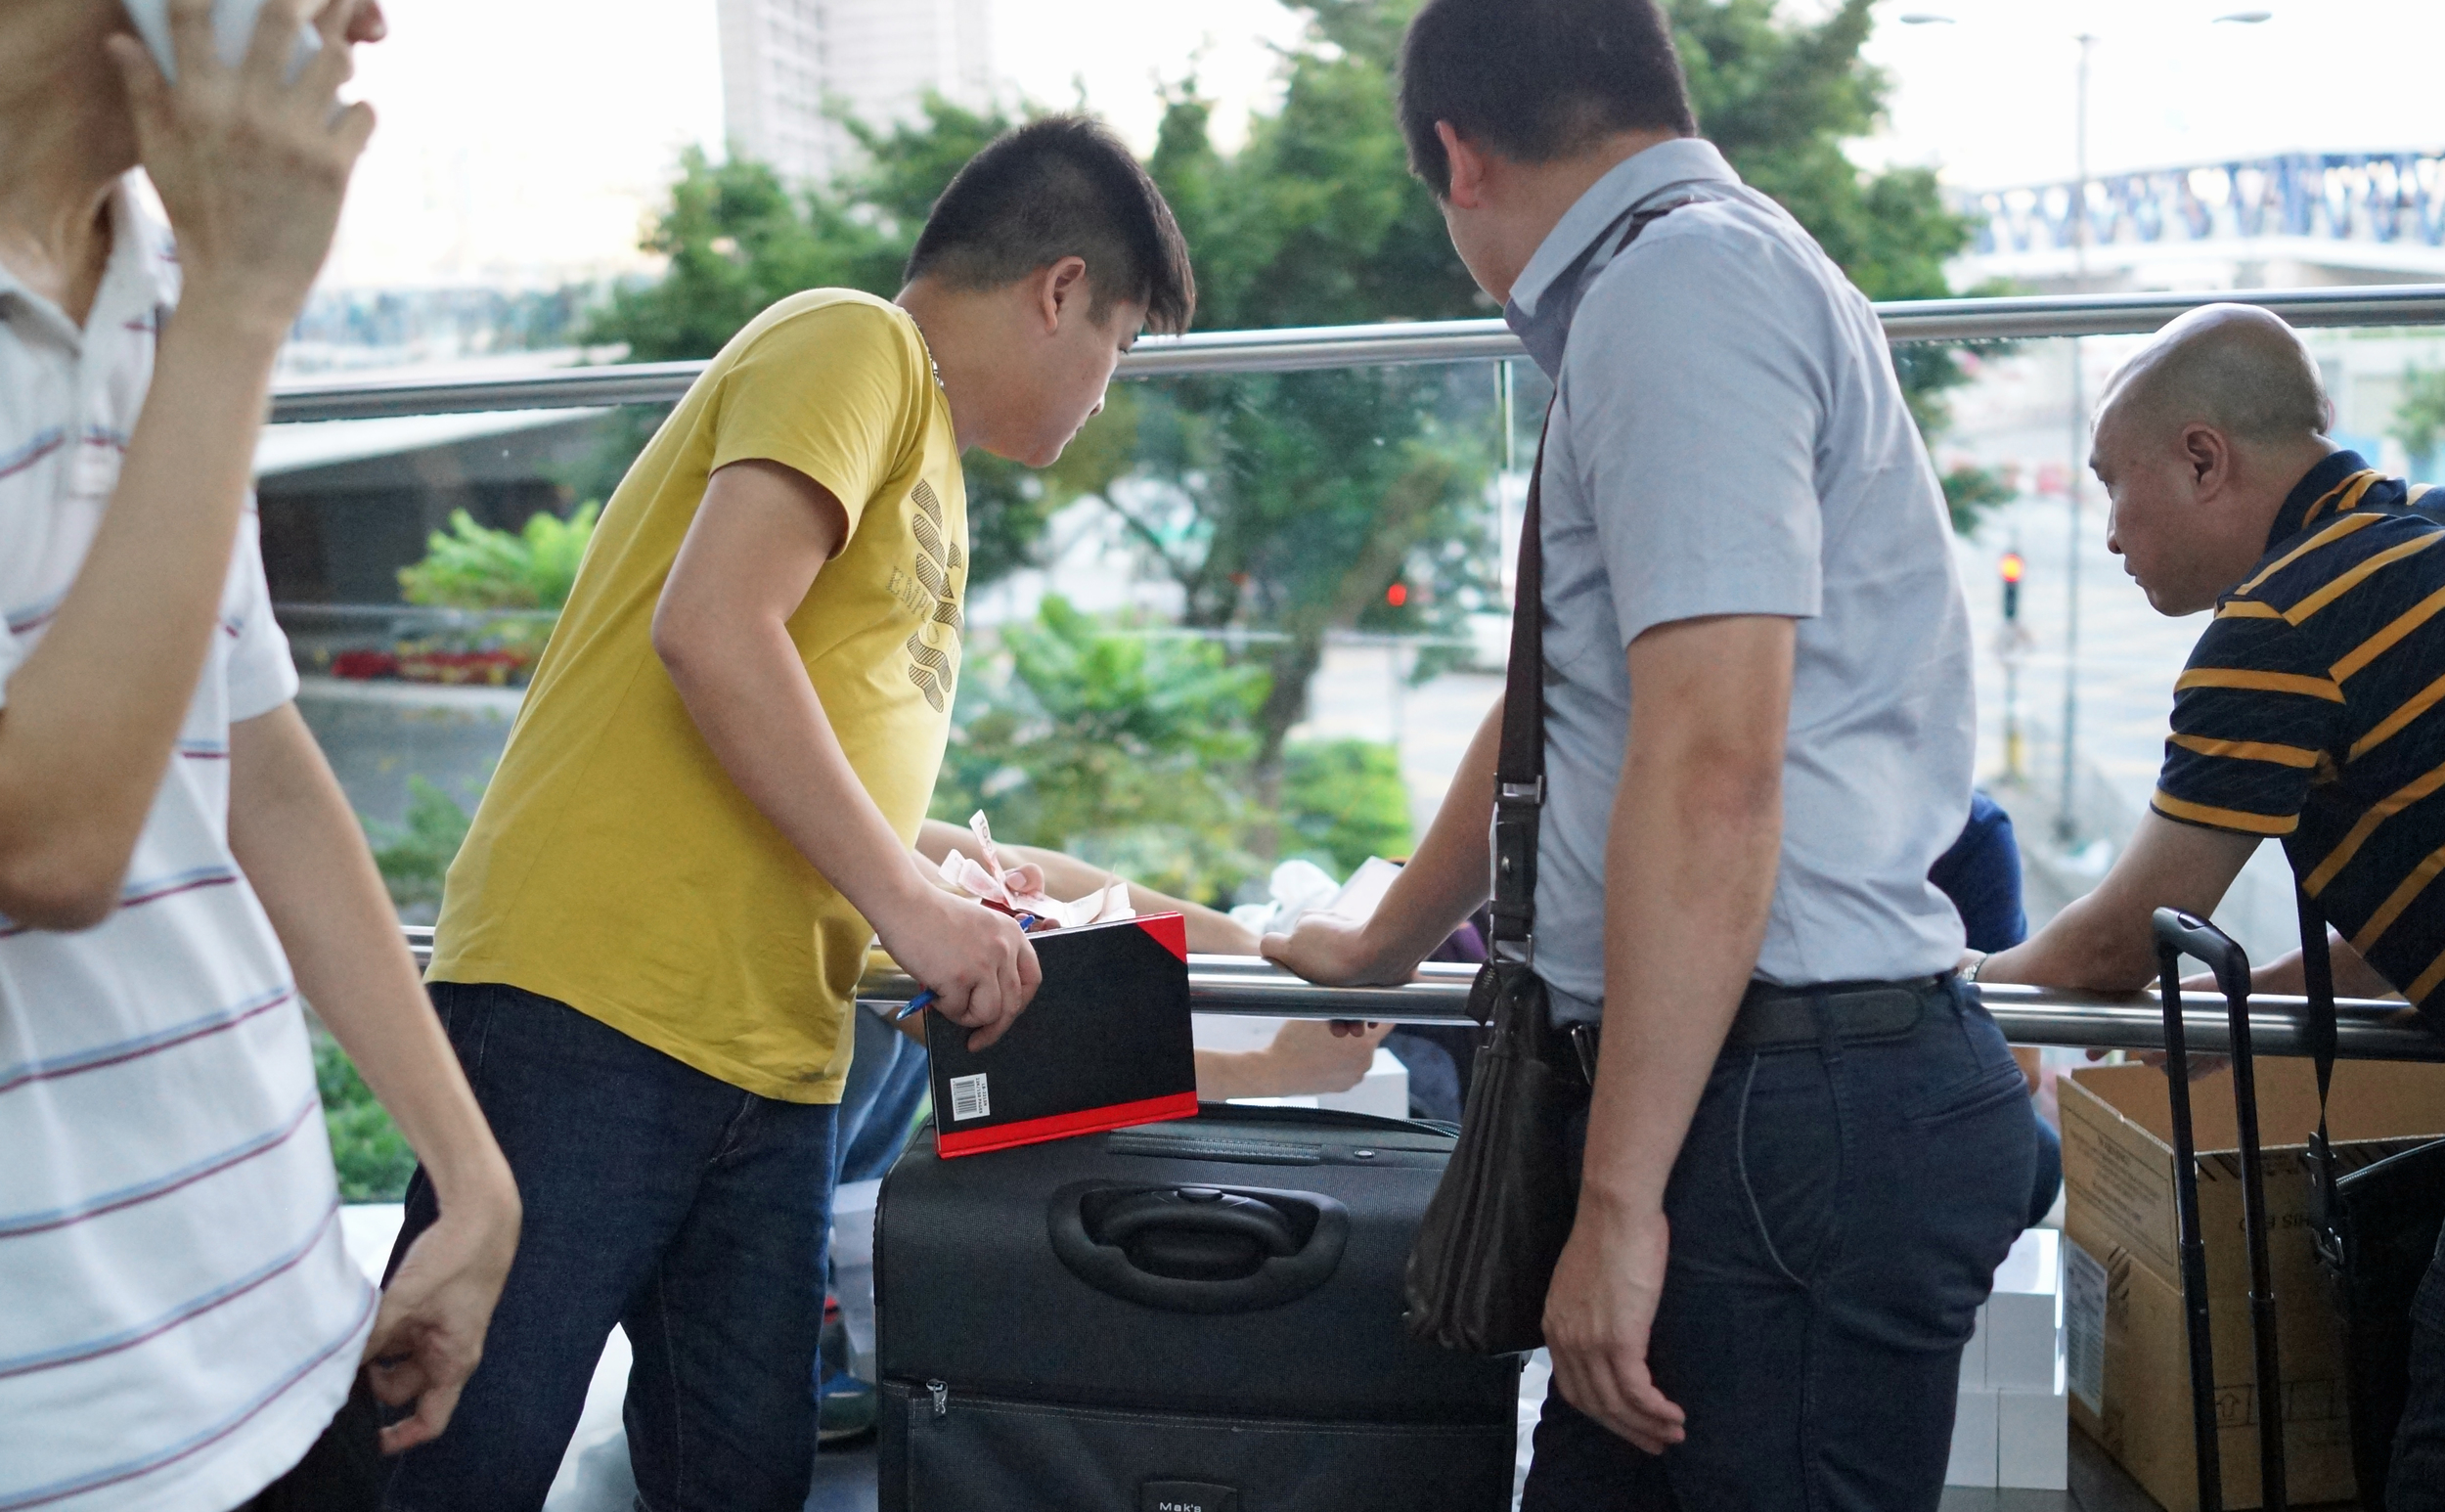 Mainland Chinese guys had suitcases full of the new phone, essentially they paid Hong Kong residents a large sum for their phone as soon as they came out of the store and then more than doubled the price and sold them to Mainland Chinese customers - all of this took place within 1 minute's walk of the Apple store!